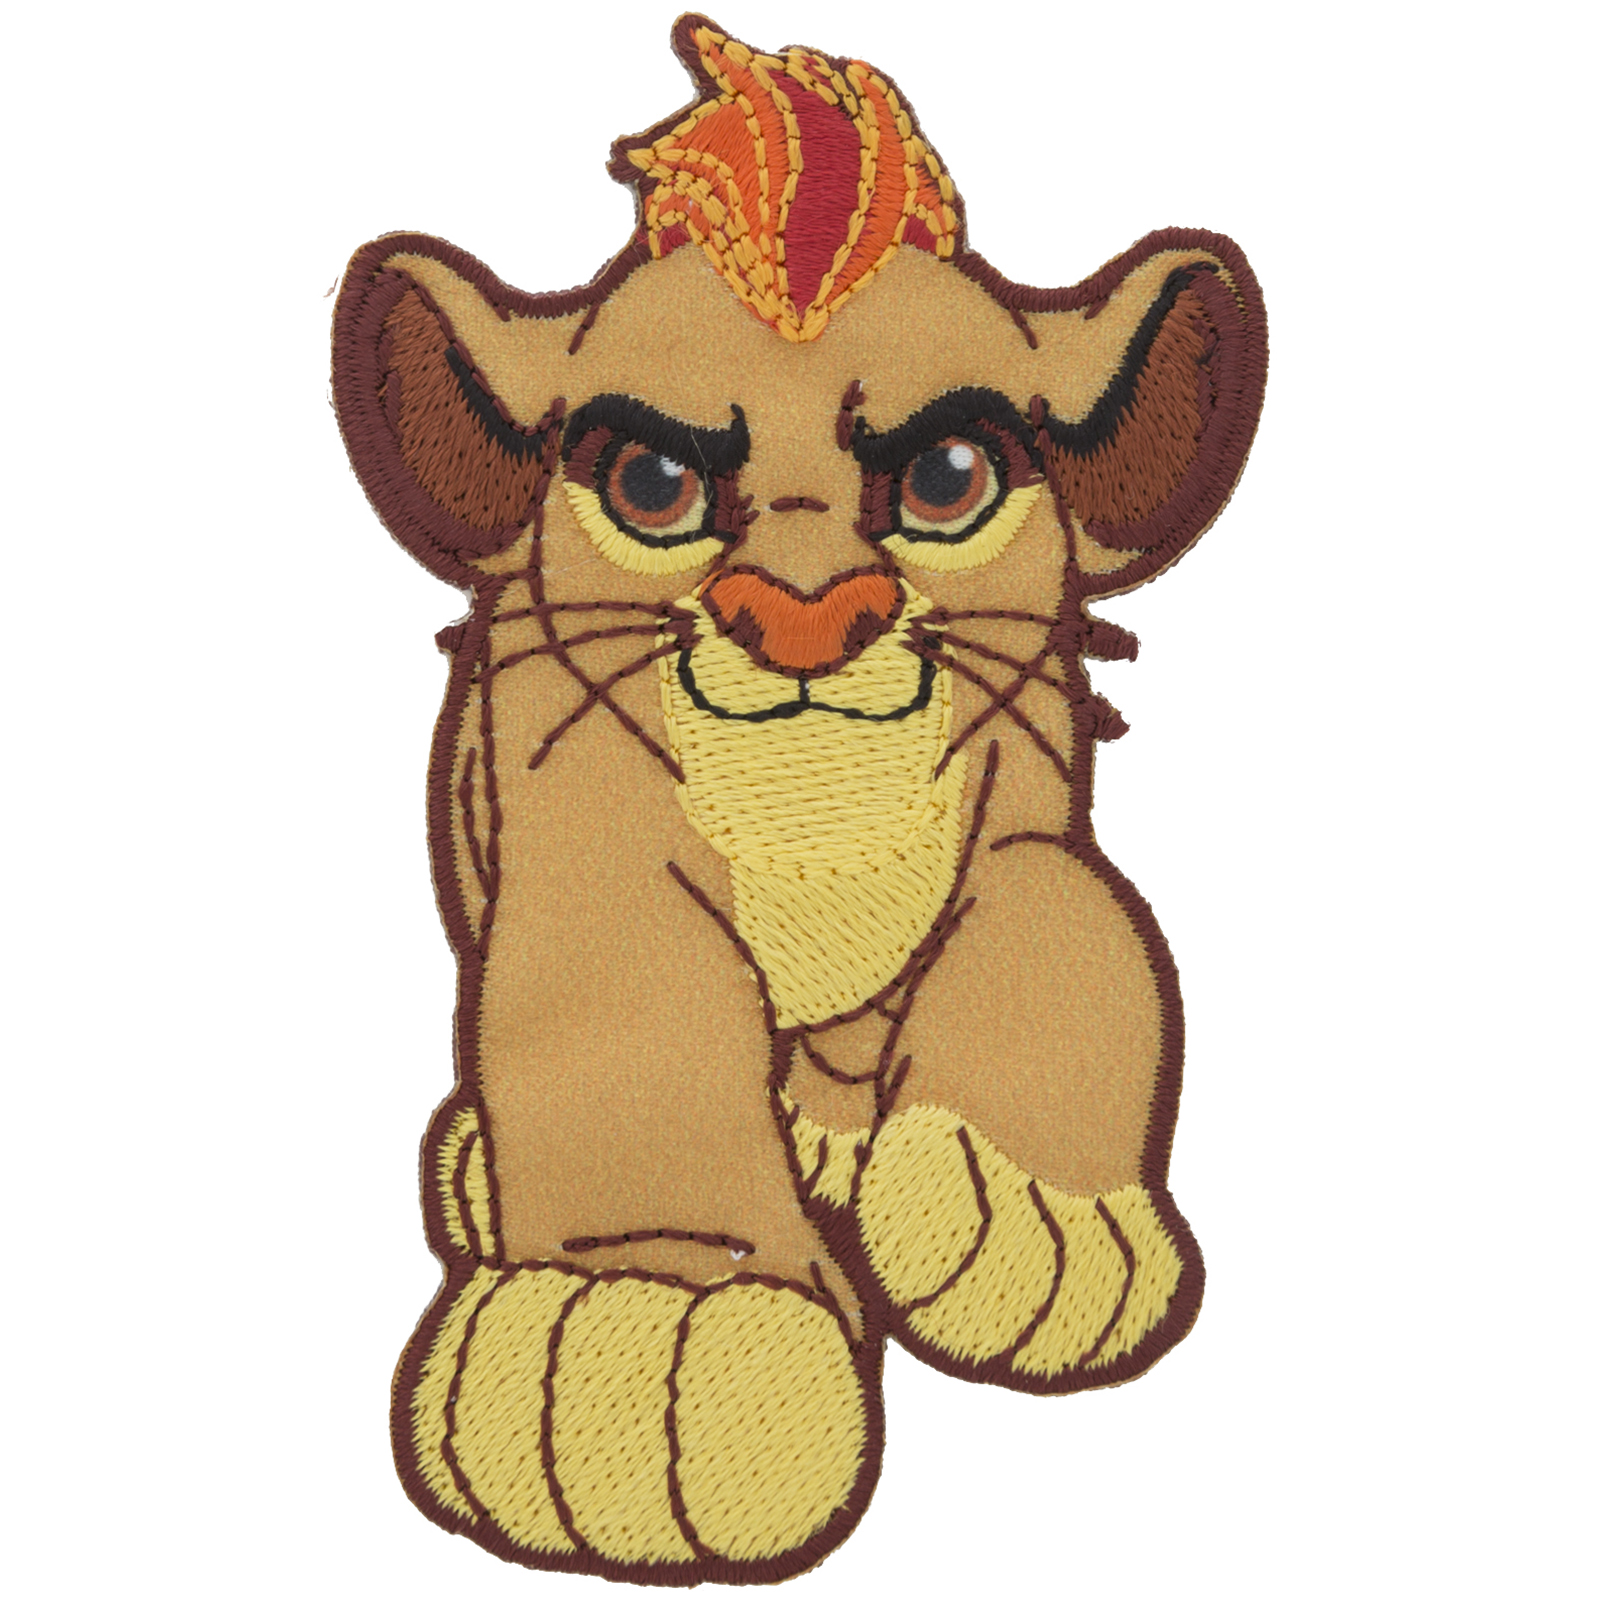 1600x1600 Shop For The Junior Small Iron On Applique, The Lion Guard